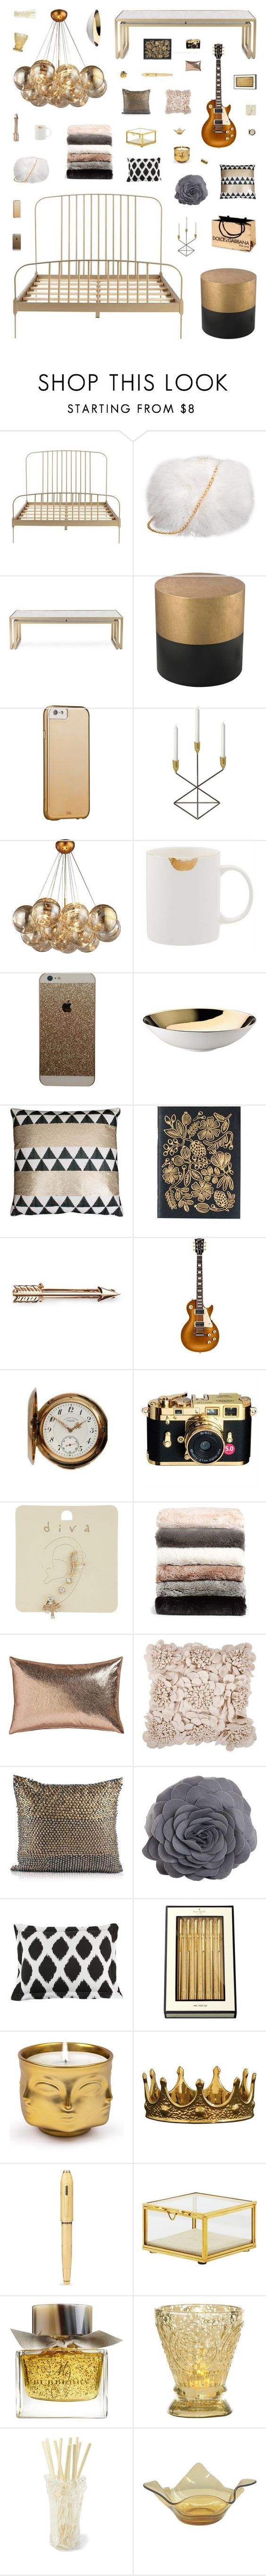 """""""Miscellaneous"""" by belenloperfido ❤ liked on Polyvore featuring interior, interiors, interior design, home, home decor, interior decorating, Mitchell Gold + Bob Williams, Renwil, Rosenthal and Miss Selfridge"""